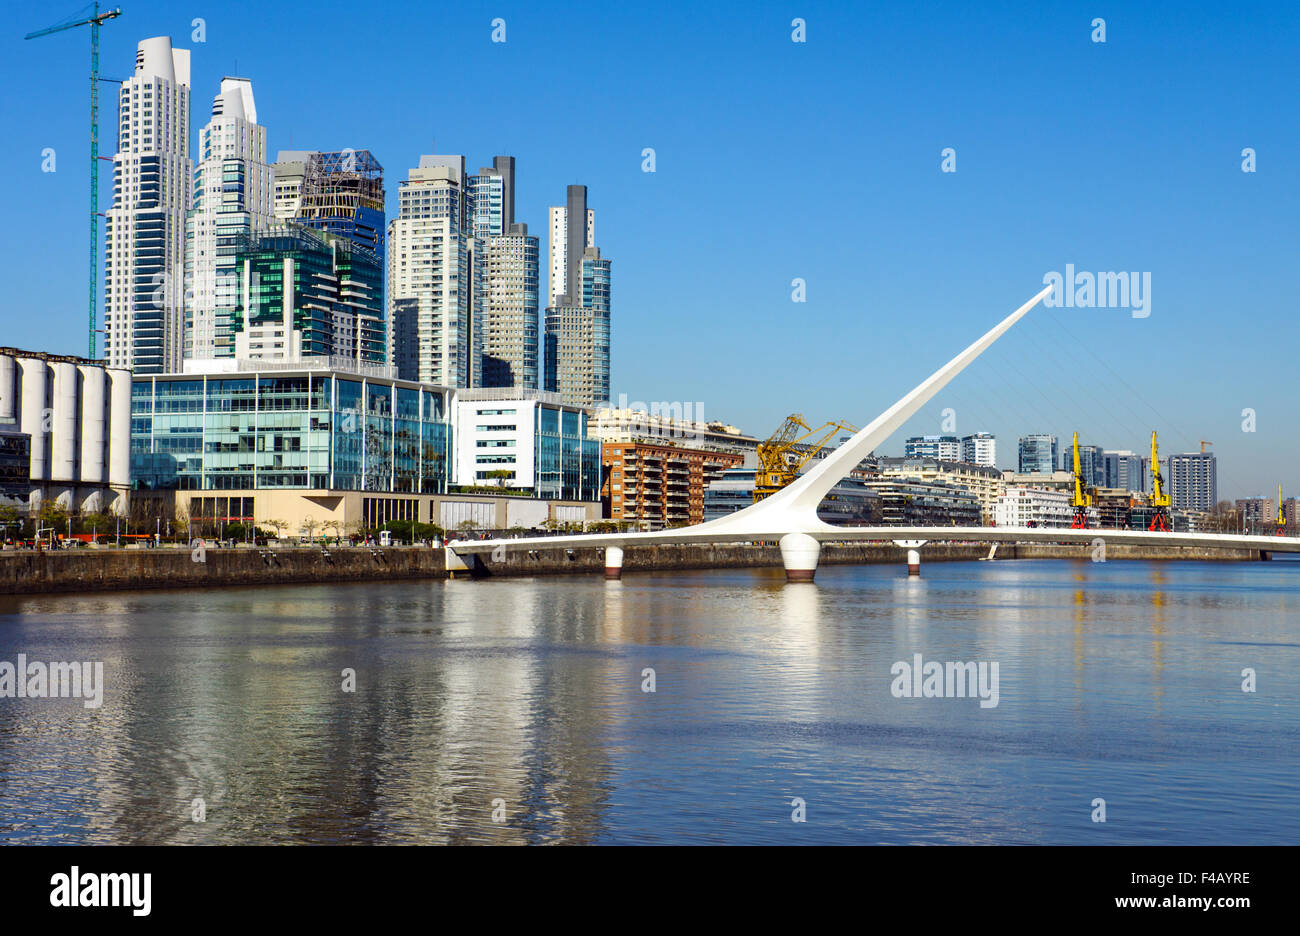 Puerto Madero in Buenos Aires - Stock Image